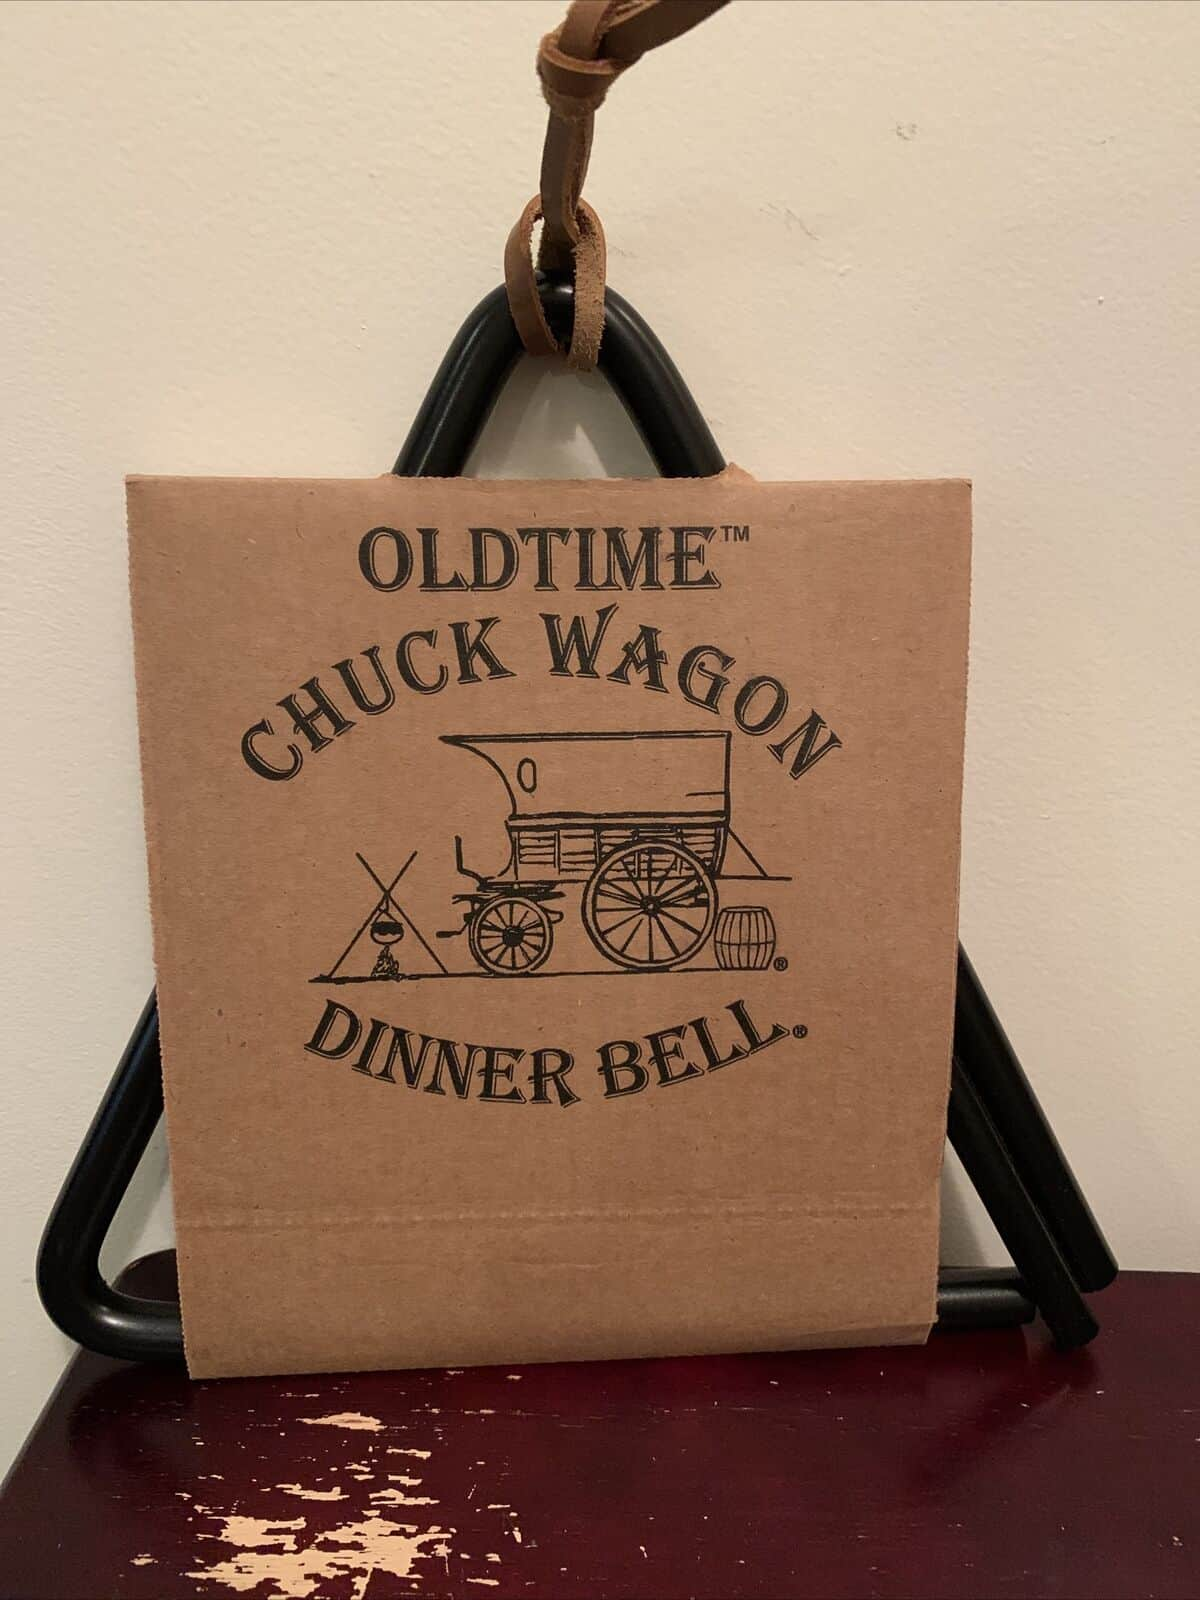 Old Time Chuck Wagon Dinner Bell - 12 inches